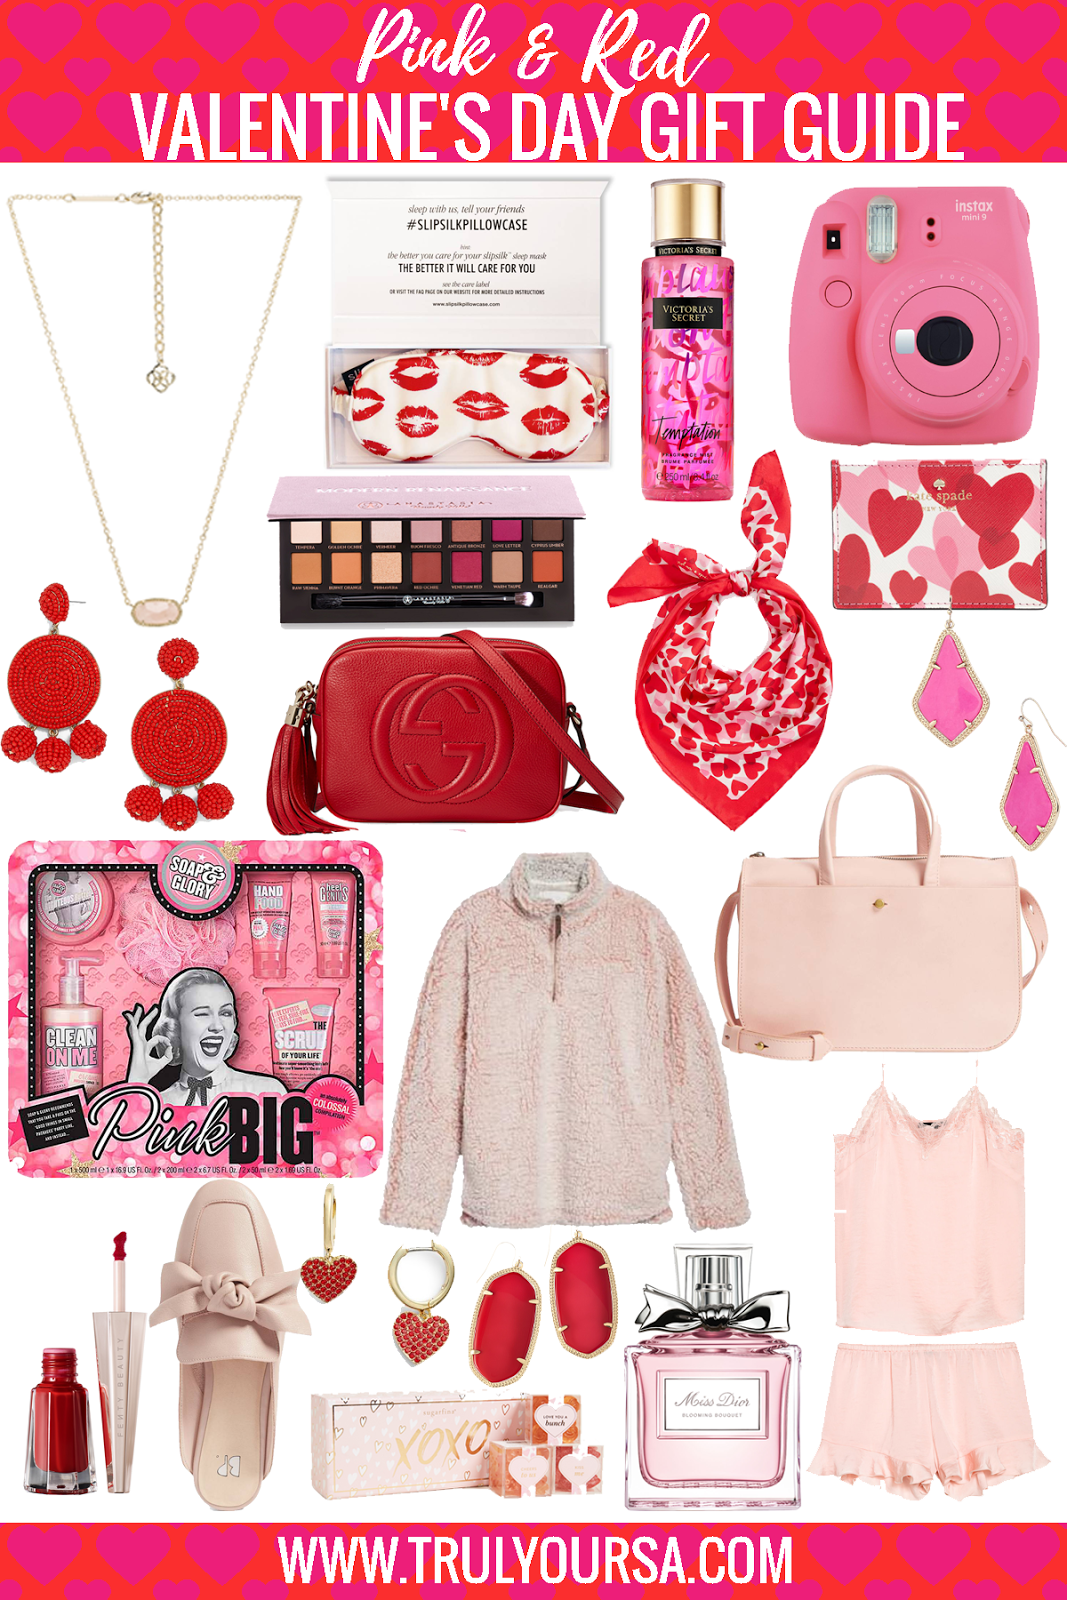 Valentine's Day is right around the corner, so I hope you already have an idea of what to get your sweetheart. If you don't, I have the perfect list of pink and red gifts that are sure to put a smile on her face! #ValentinesDay #giftguide #ValentinesDayGiftGuide